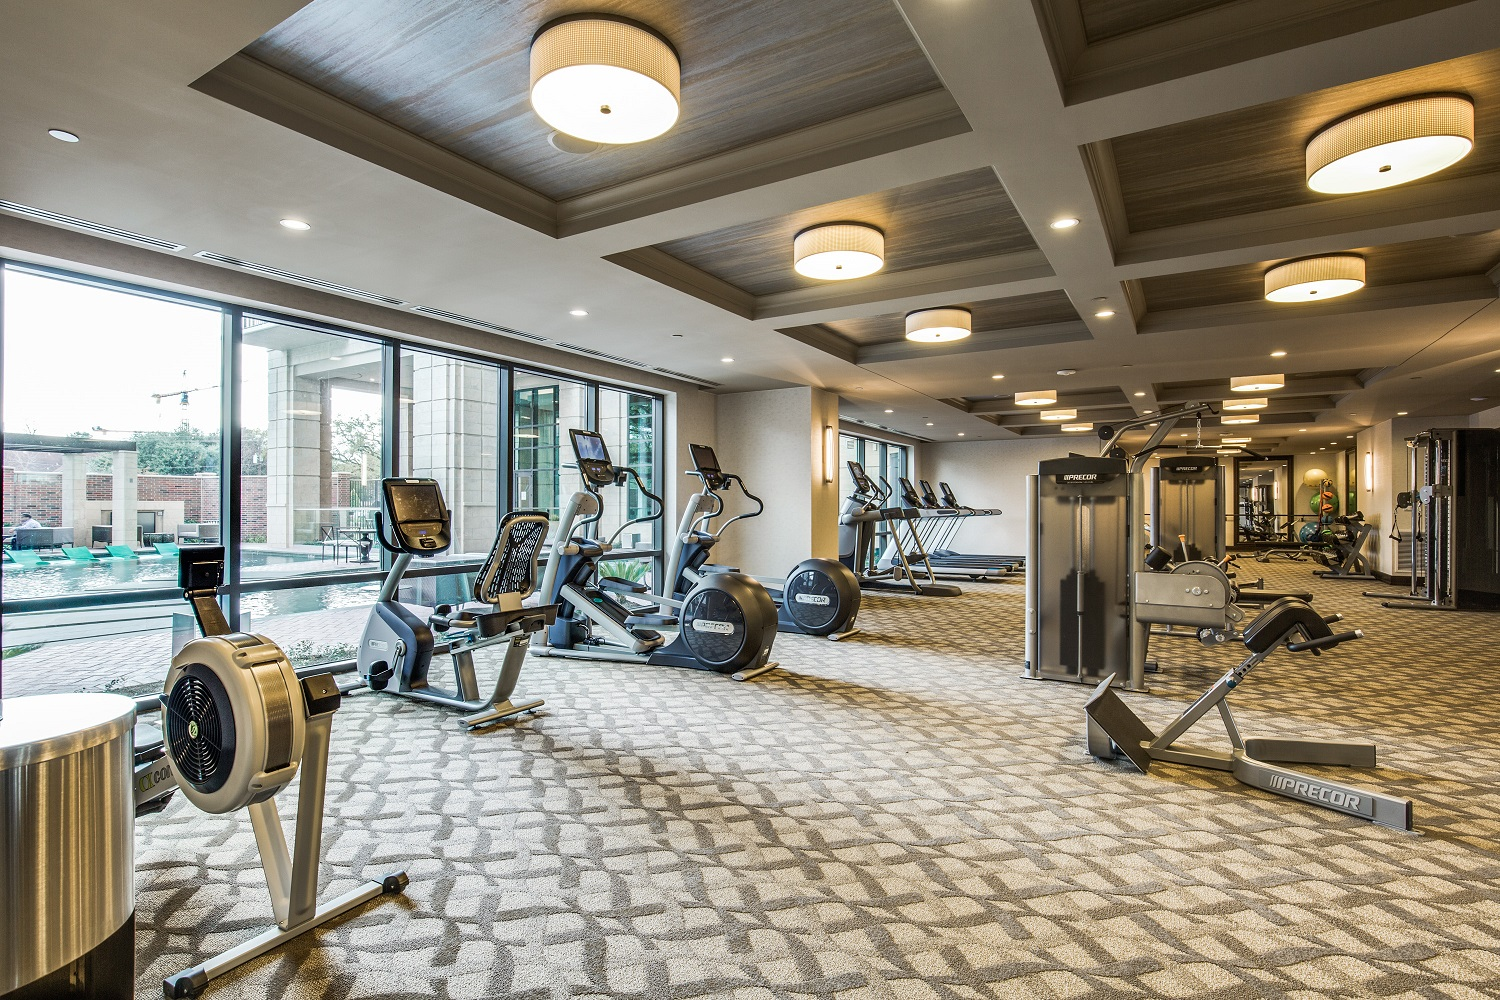 Strength and Cardio Fitness Center with Precor equipment